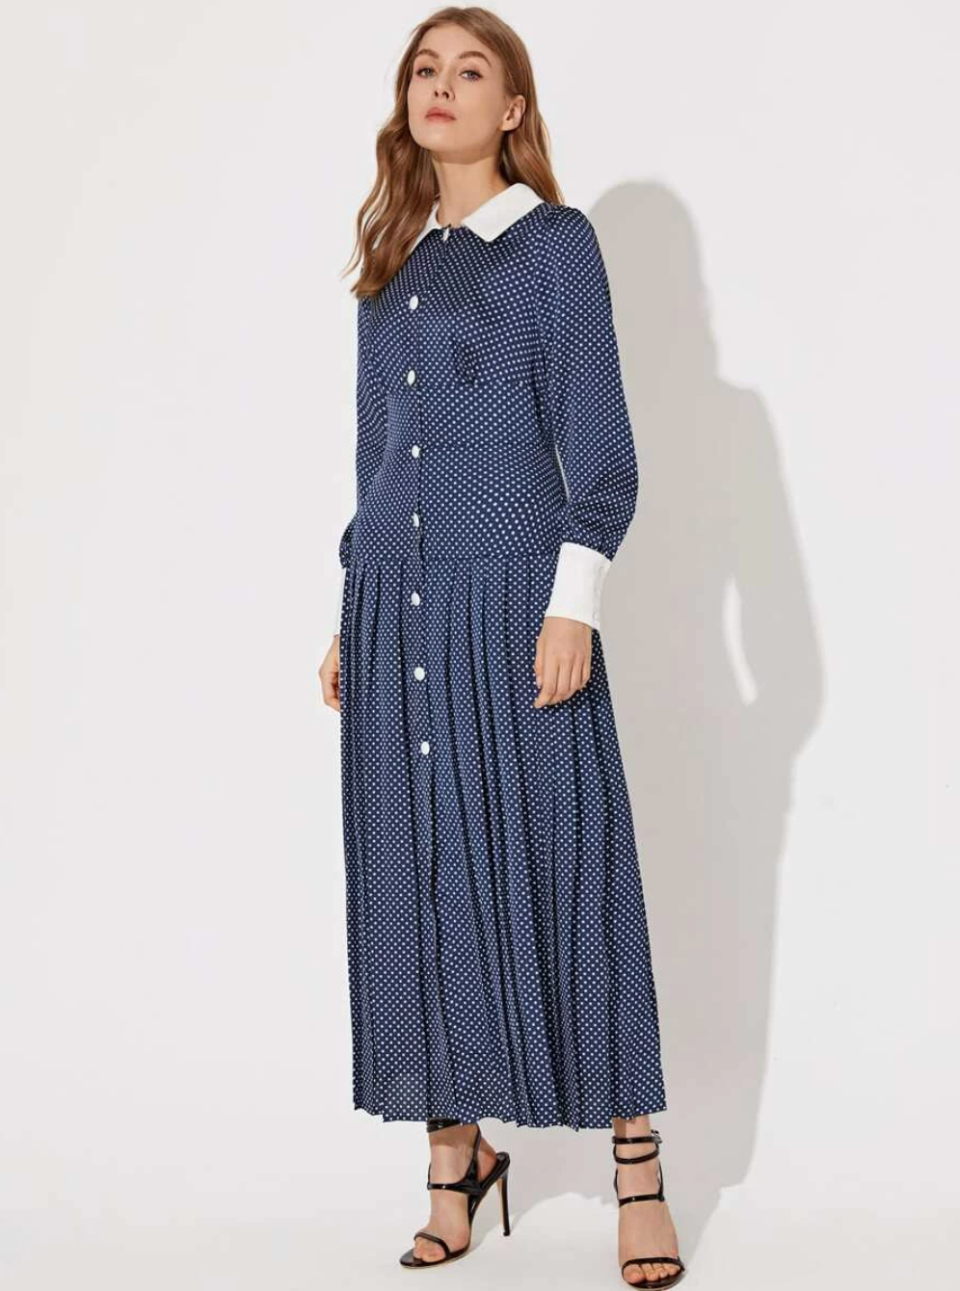 Single Breasted Contrast Collar Polka Dot Pleated Dress. Image via SHEIN.